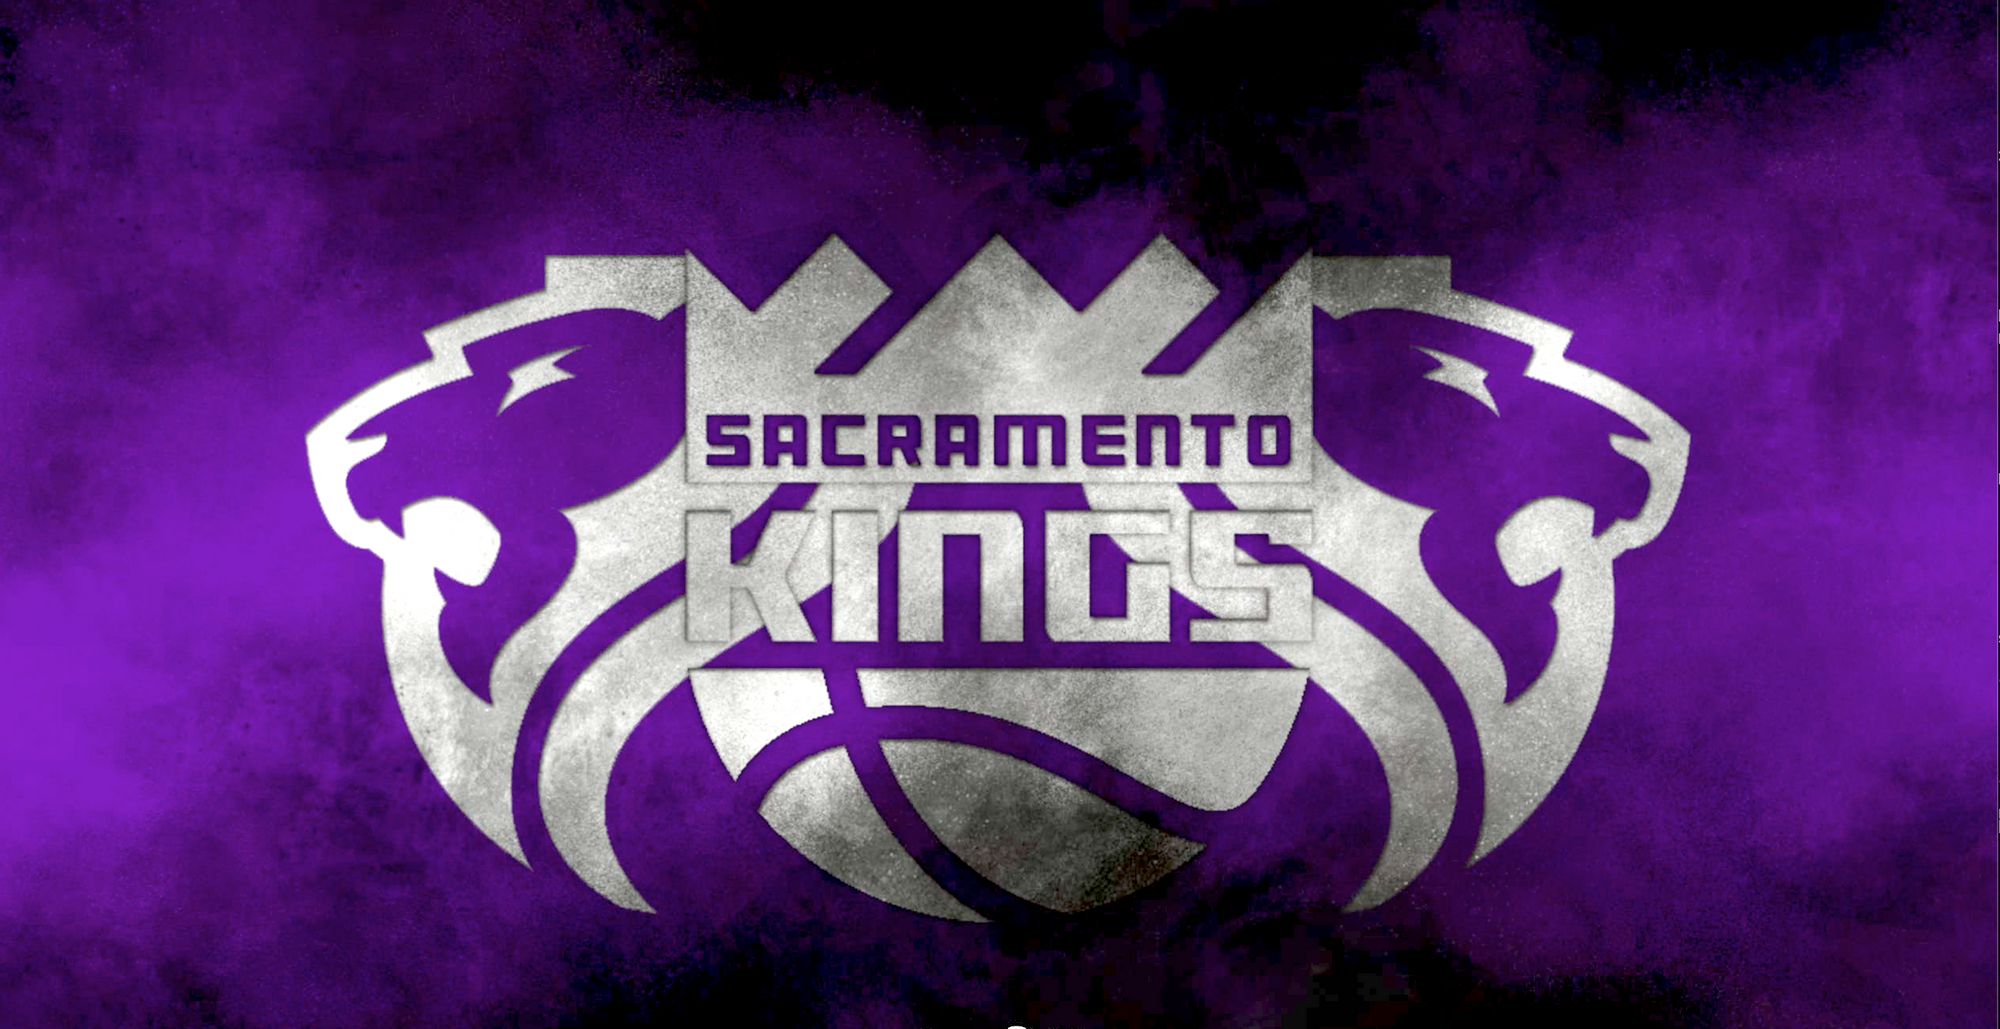 NBA's Sacramento Kings Announces Blockchain-Based Crypto Token